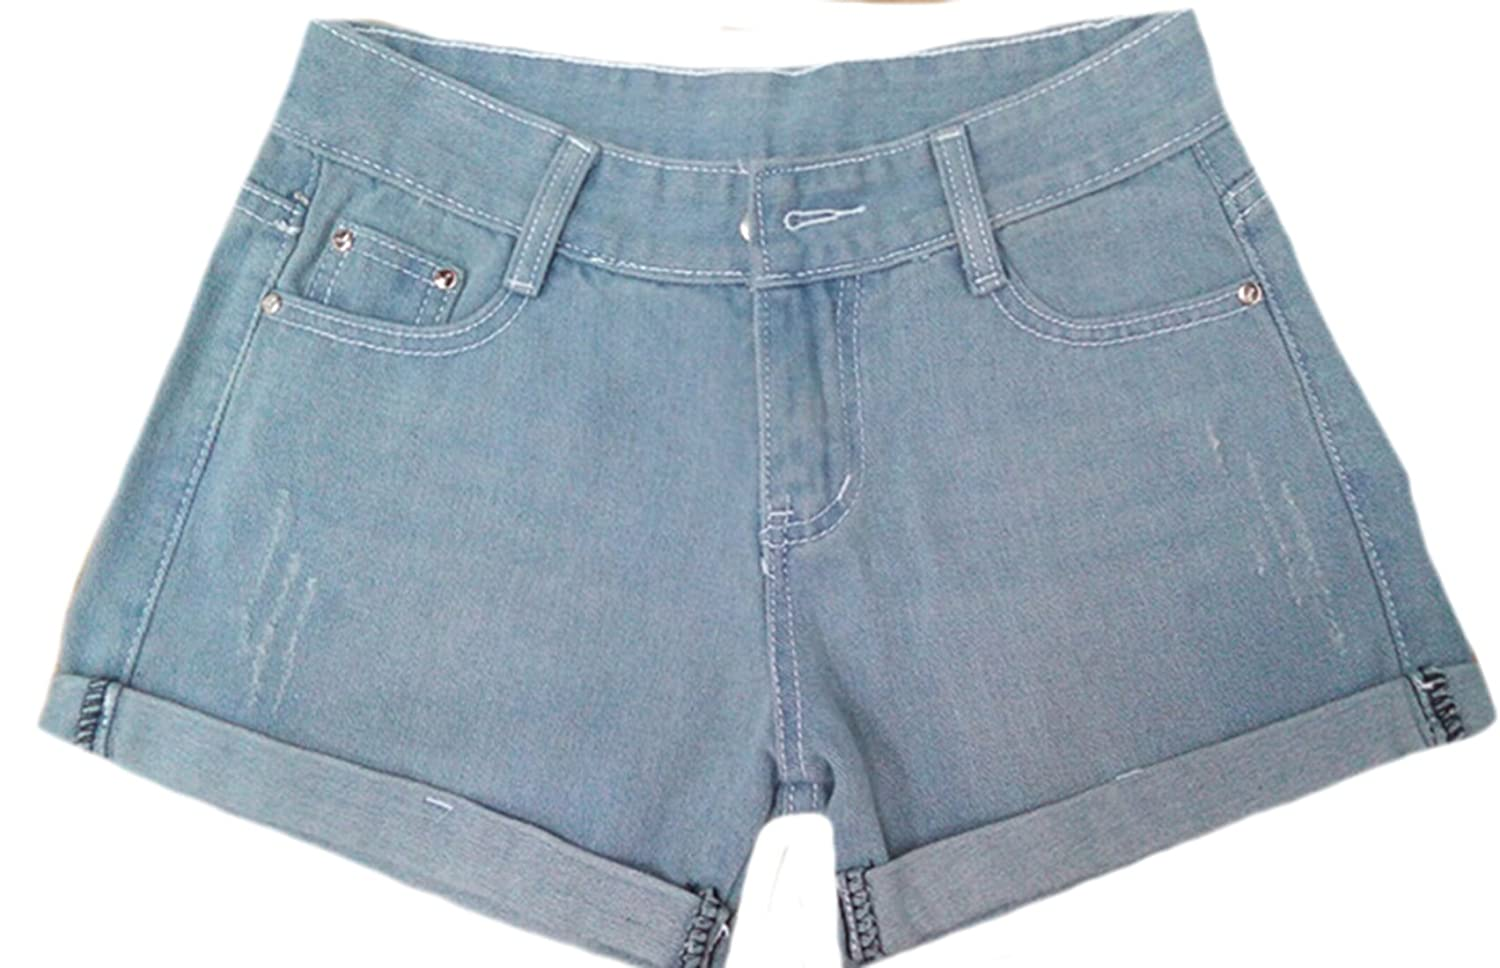 MLG Womens Basic Crimping Pockets Blue Casual Jeans Shorts